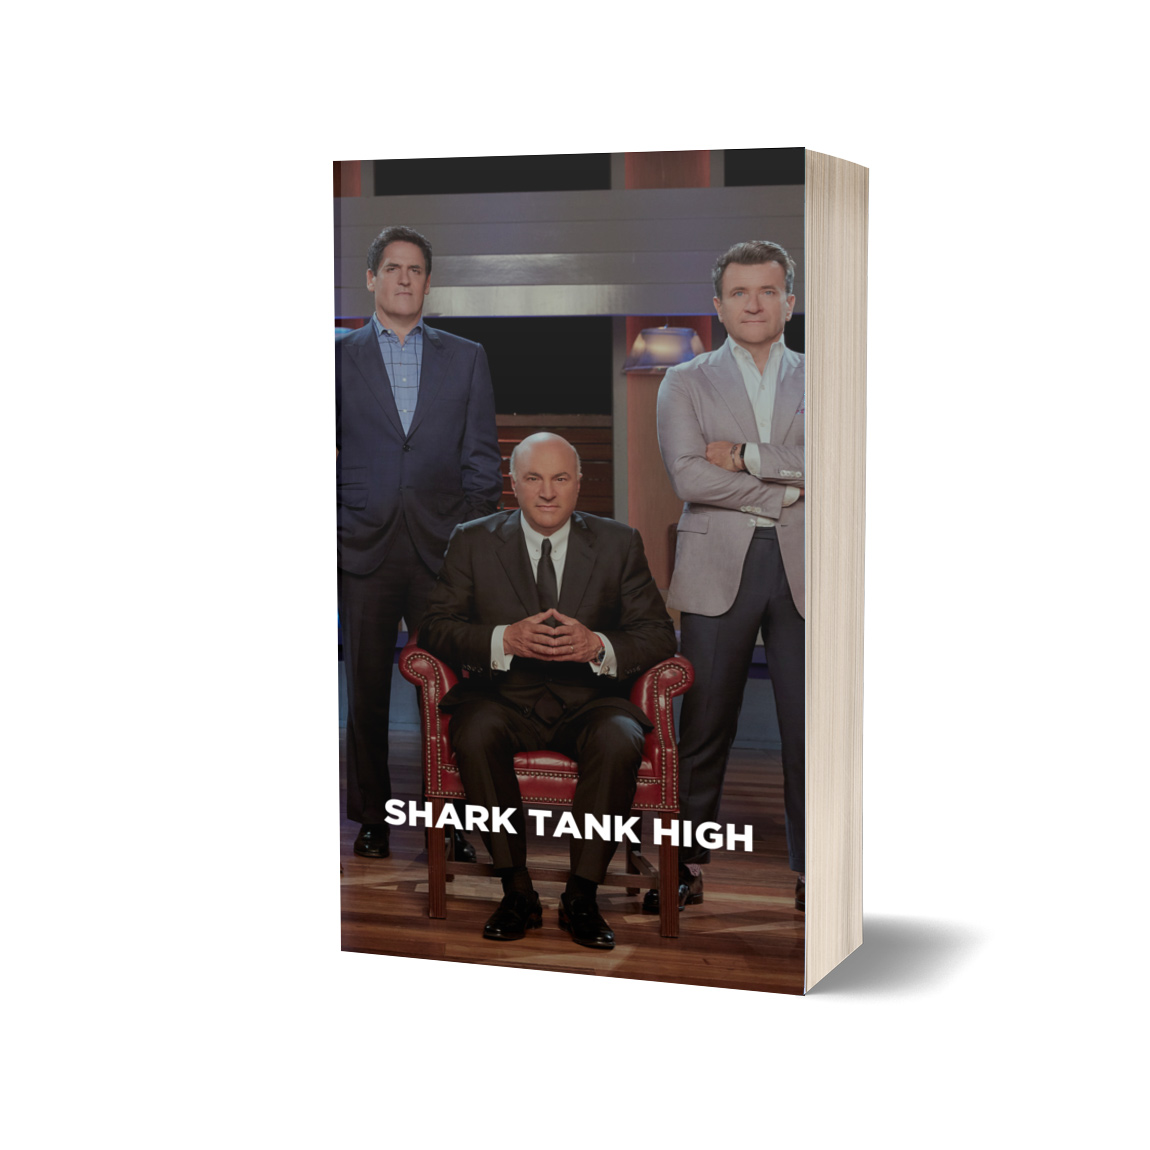 FanFic: Shark Tank High